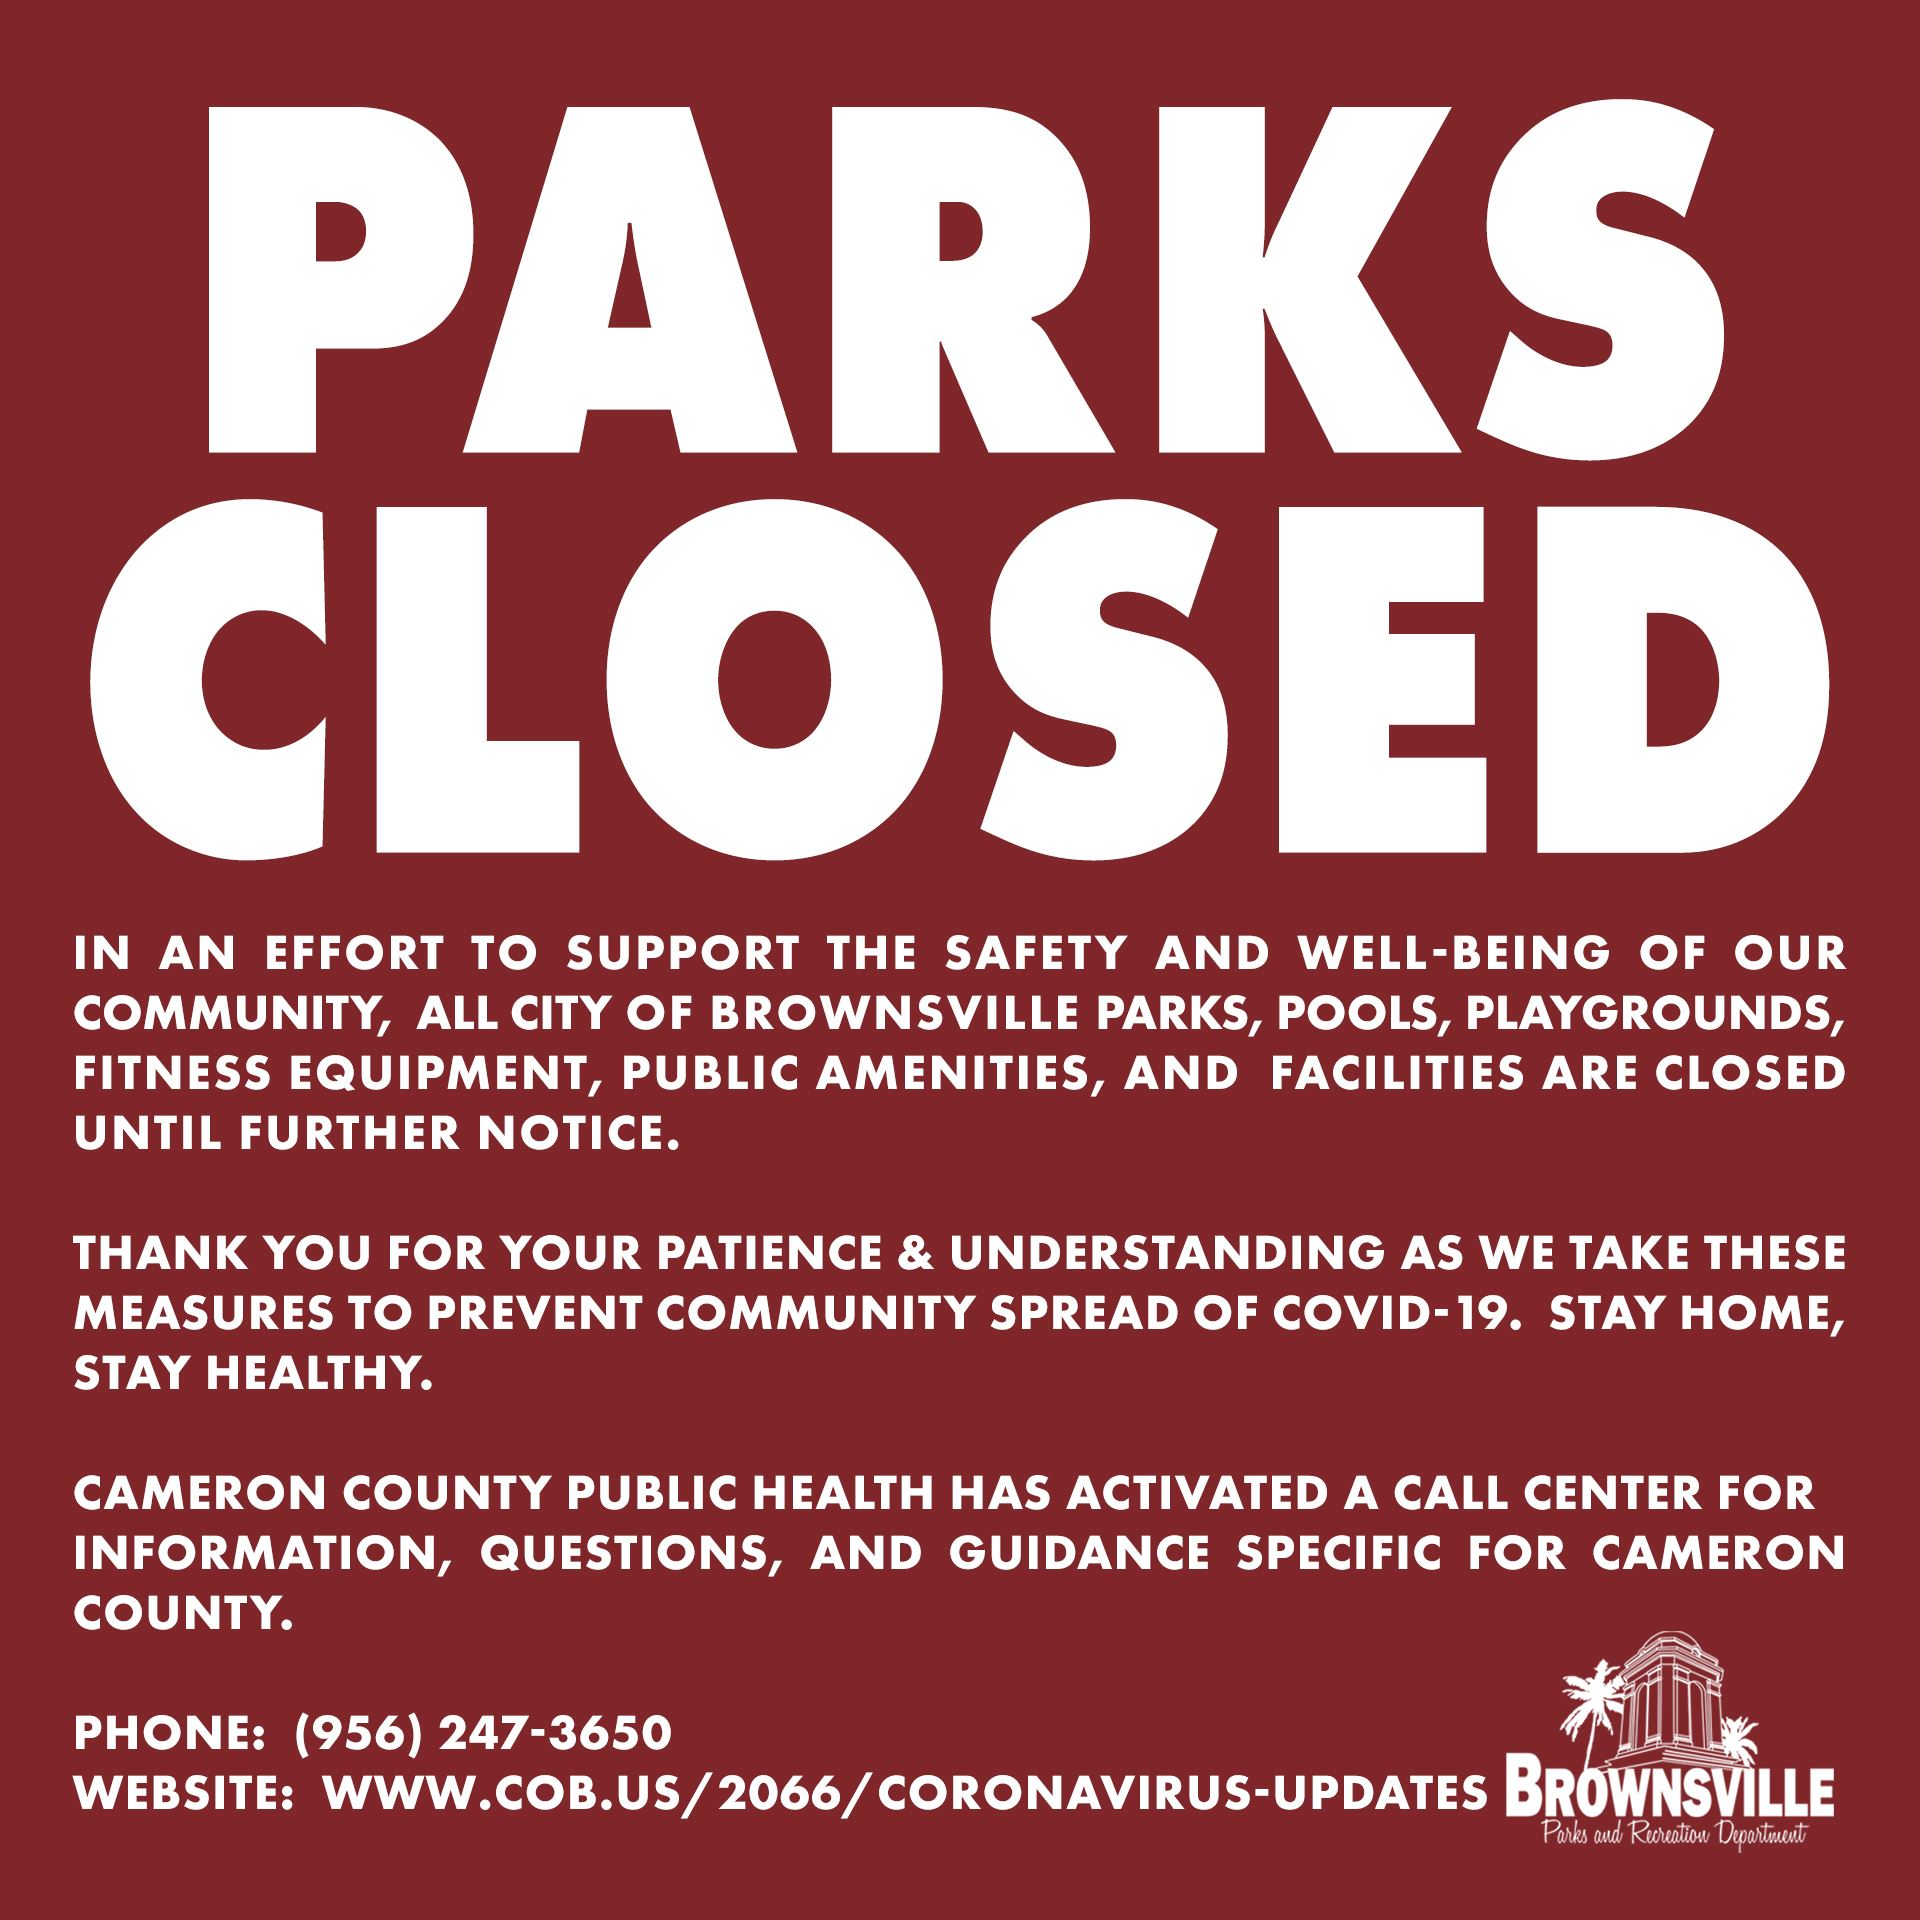 Parks-Closed-Until-Further-Notice